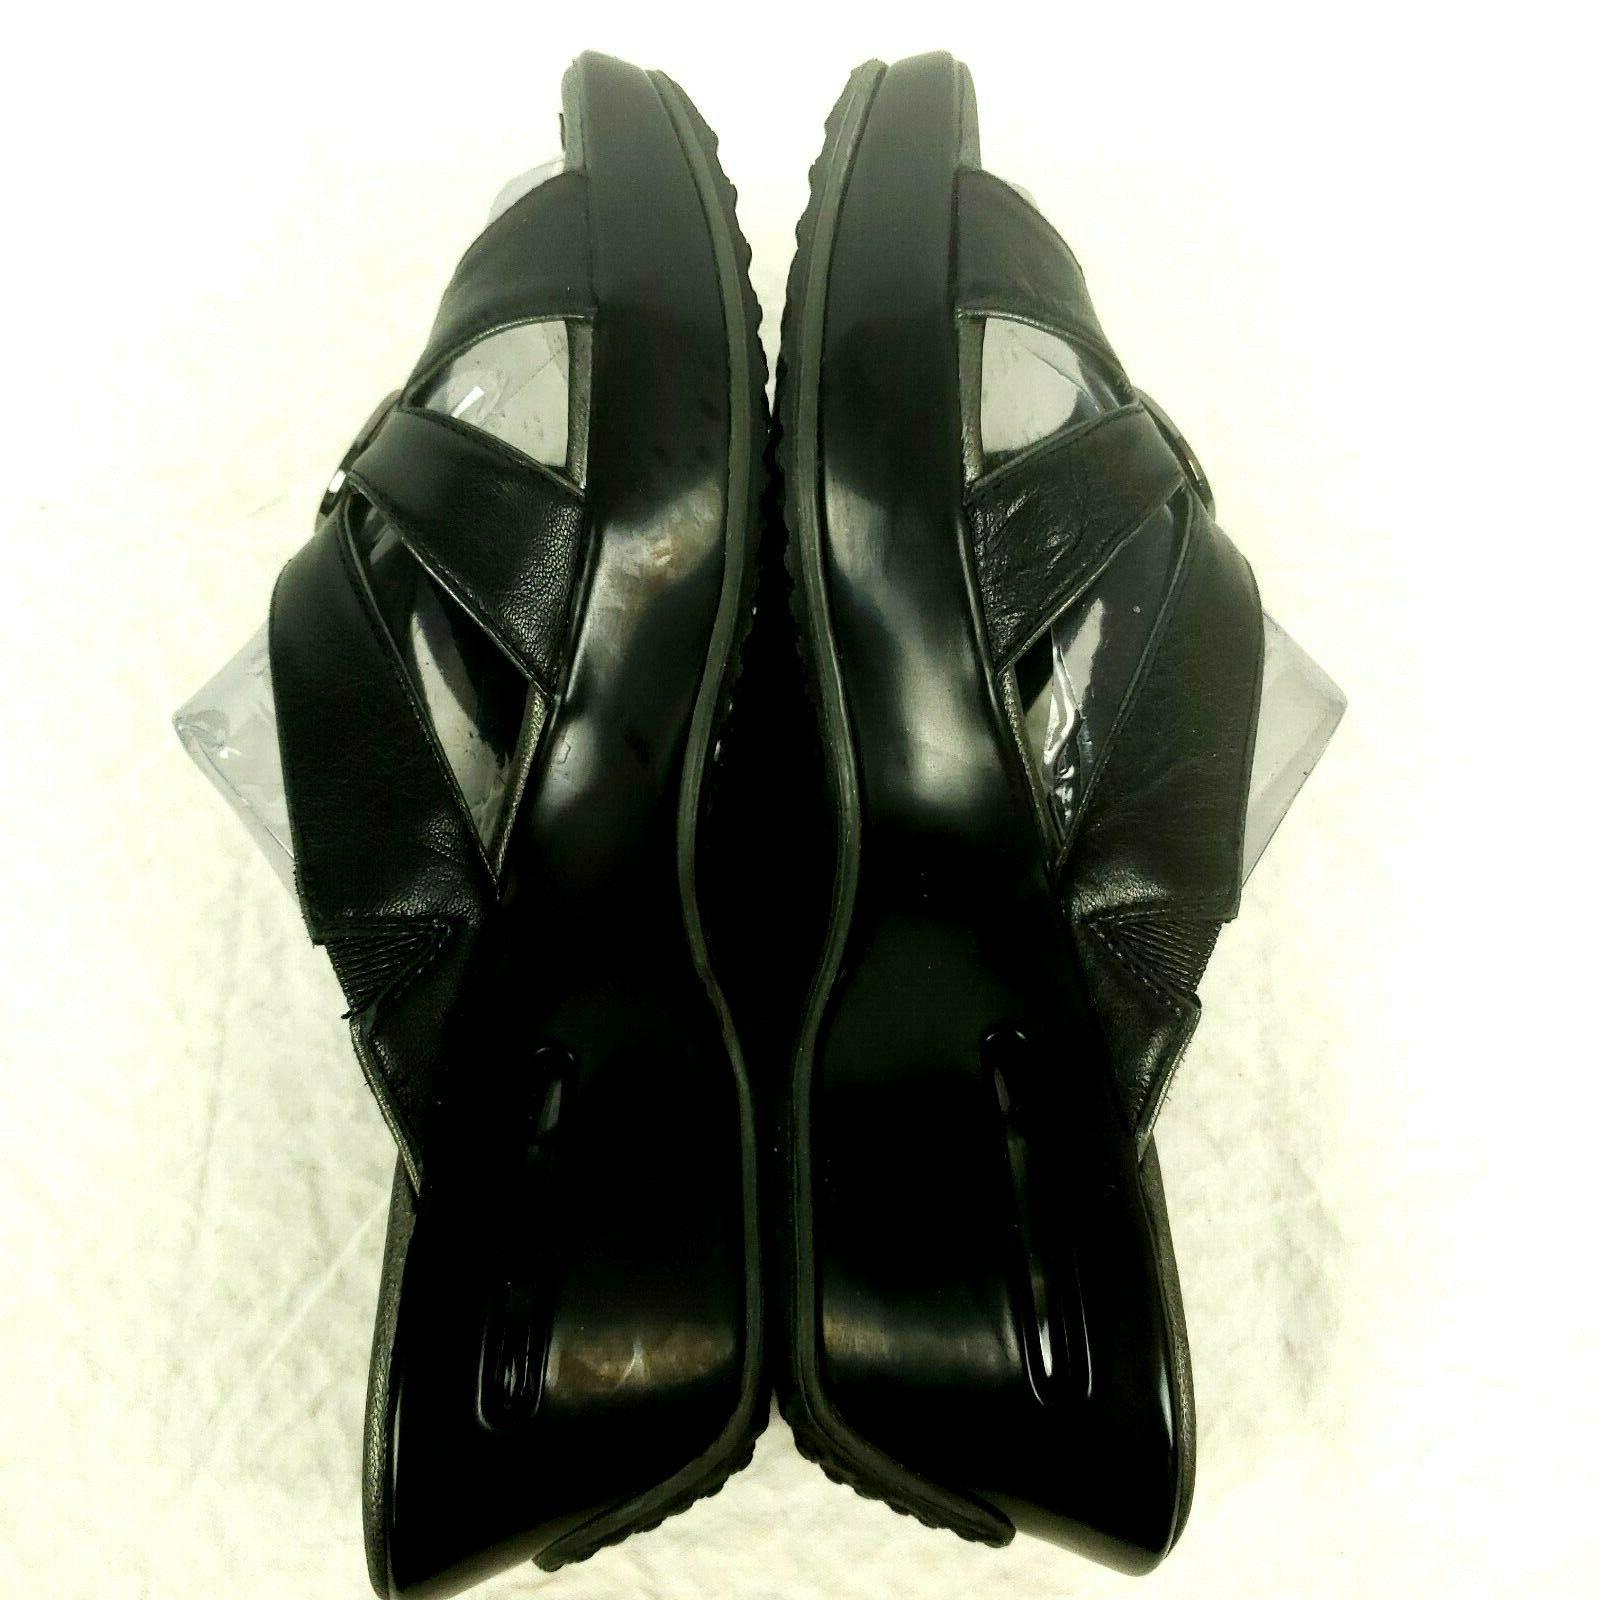 Nike Wedge Sandals Black Silver Accent $110